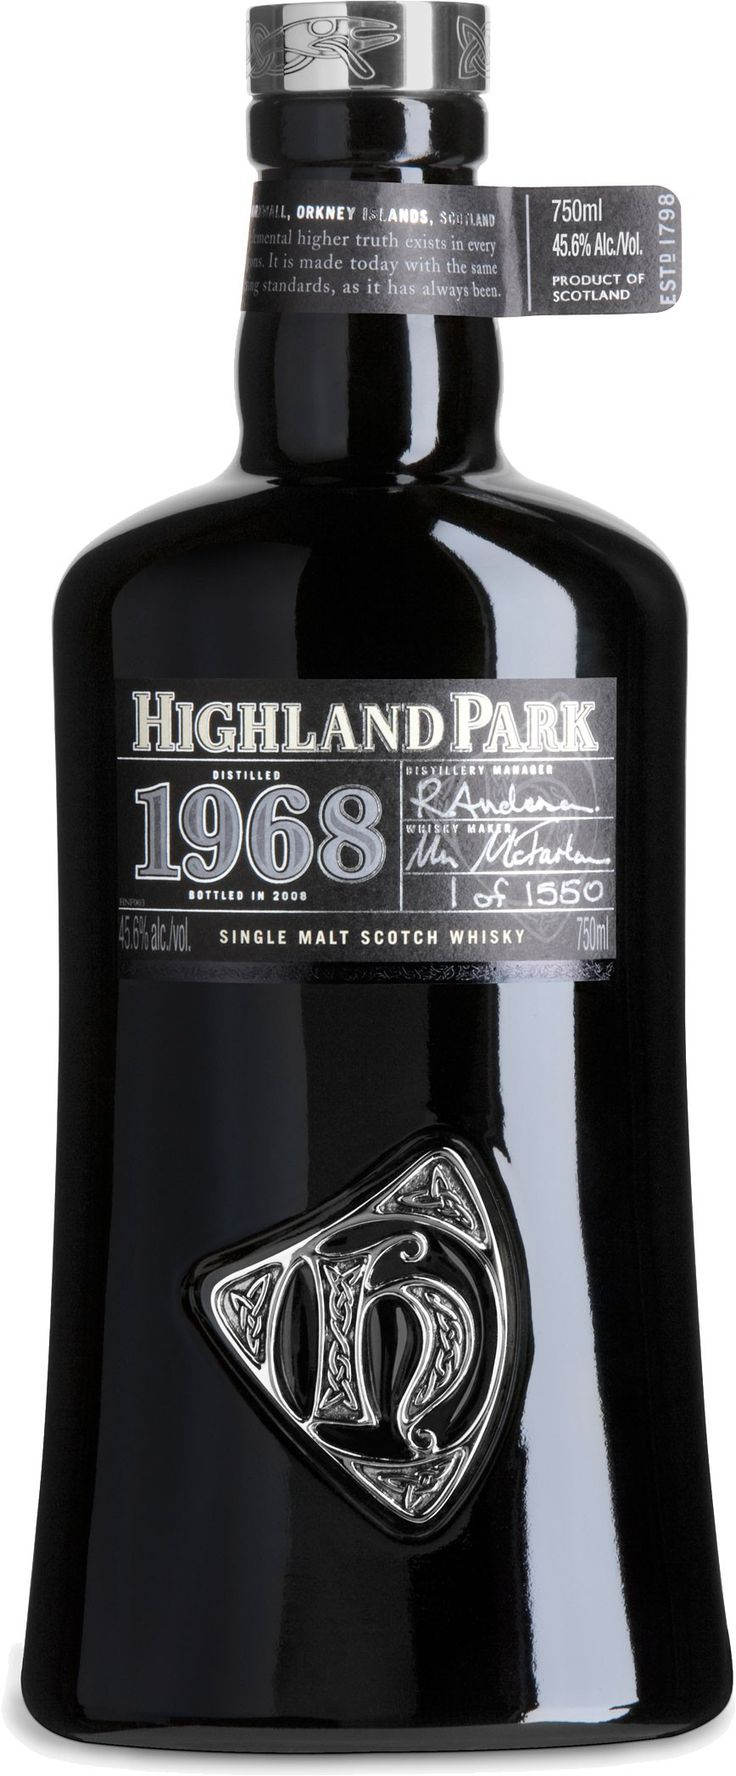 Highland Park 1968 Orcadian Vintage Single Malt Scotch Whisky | @Caskers